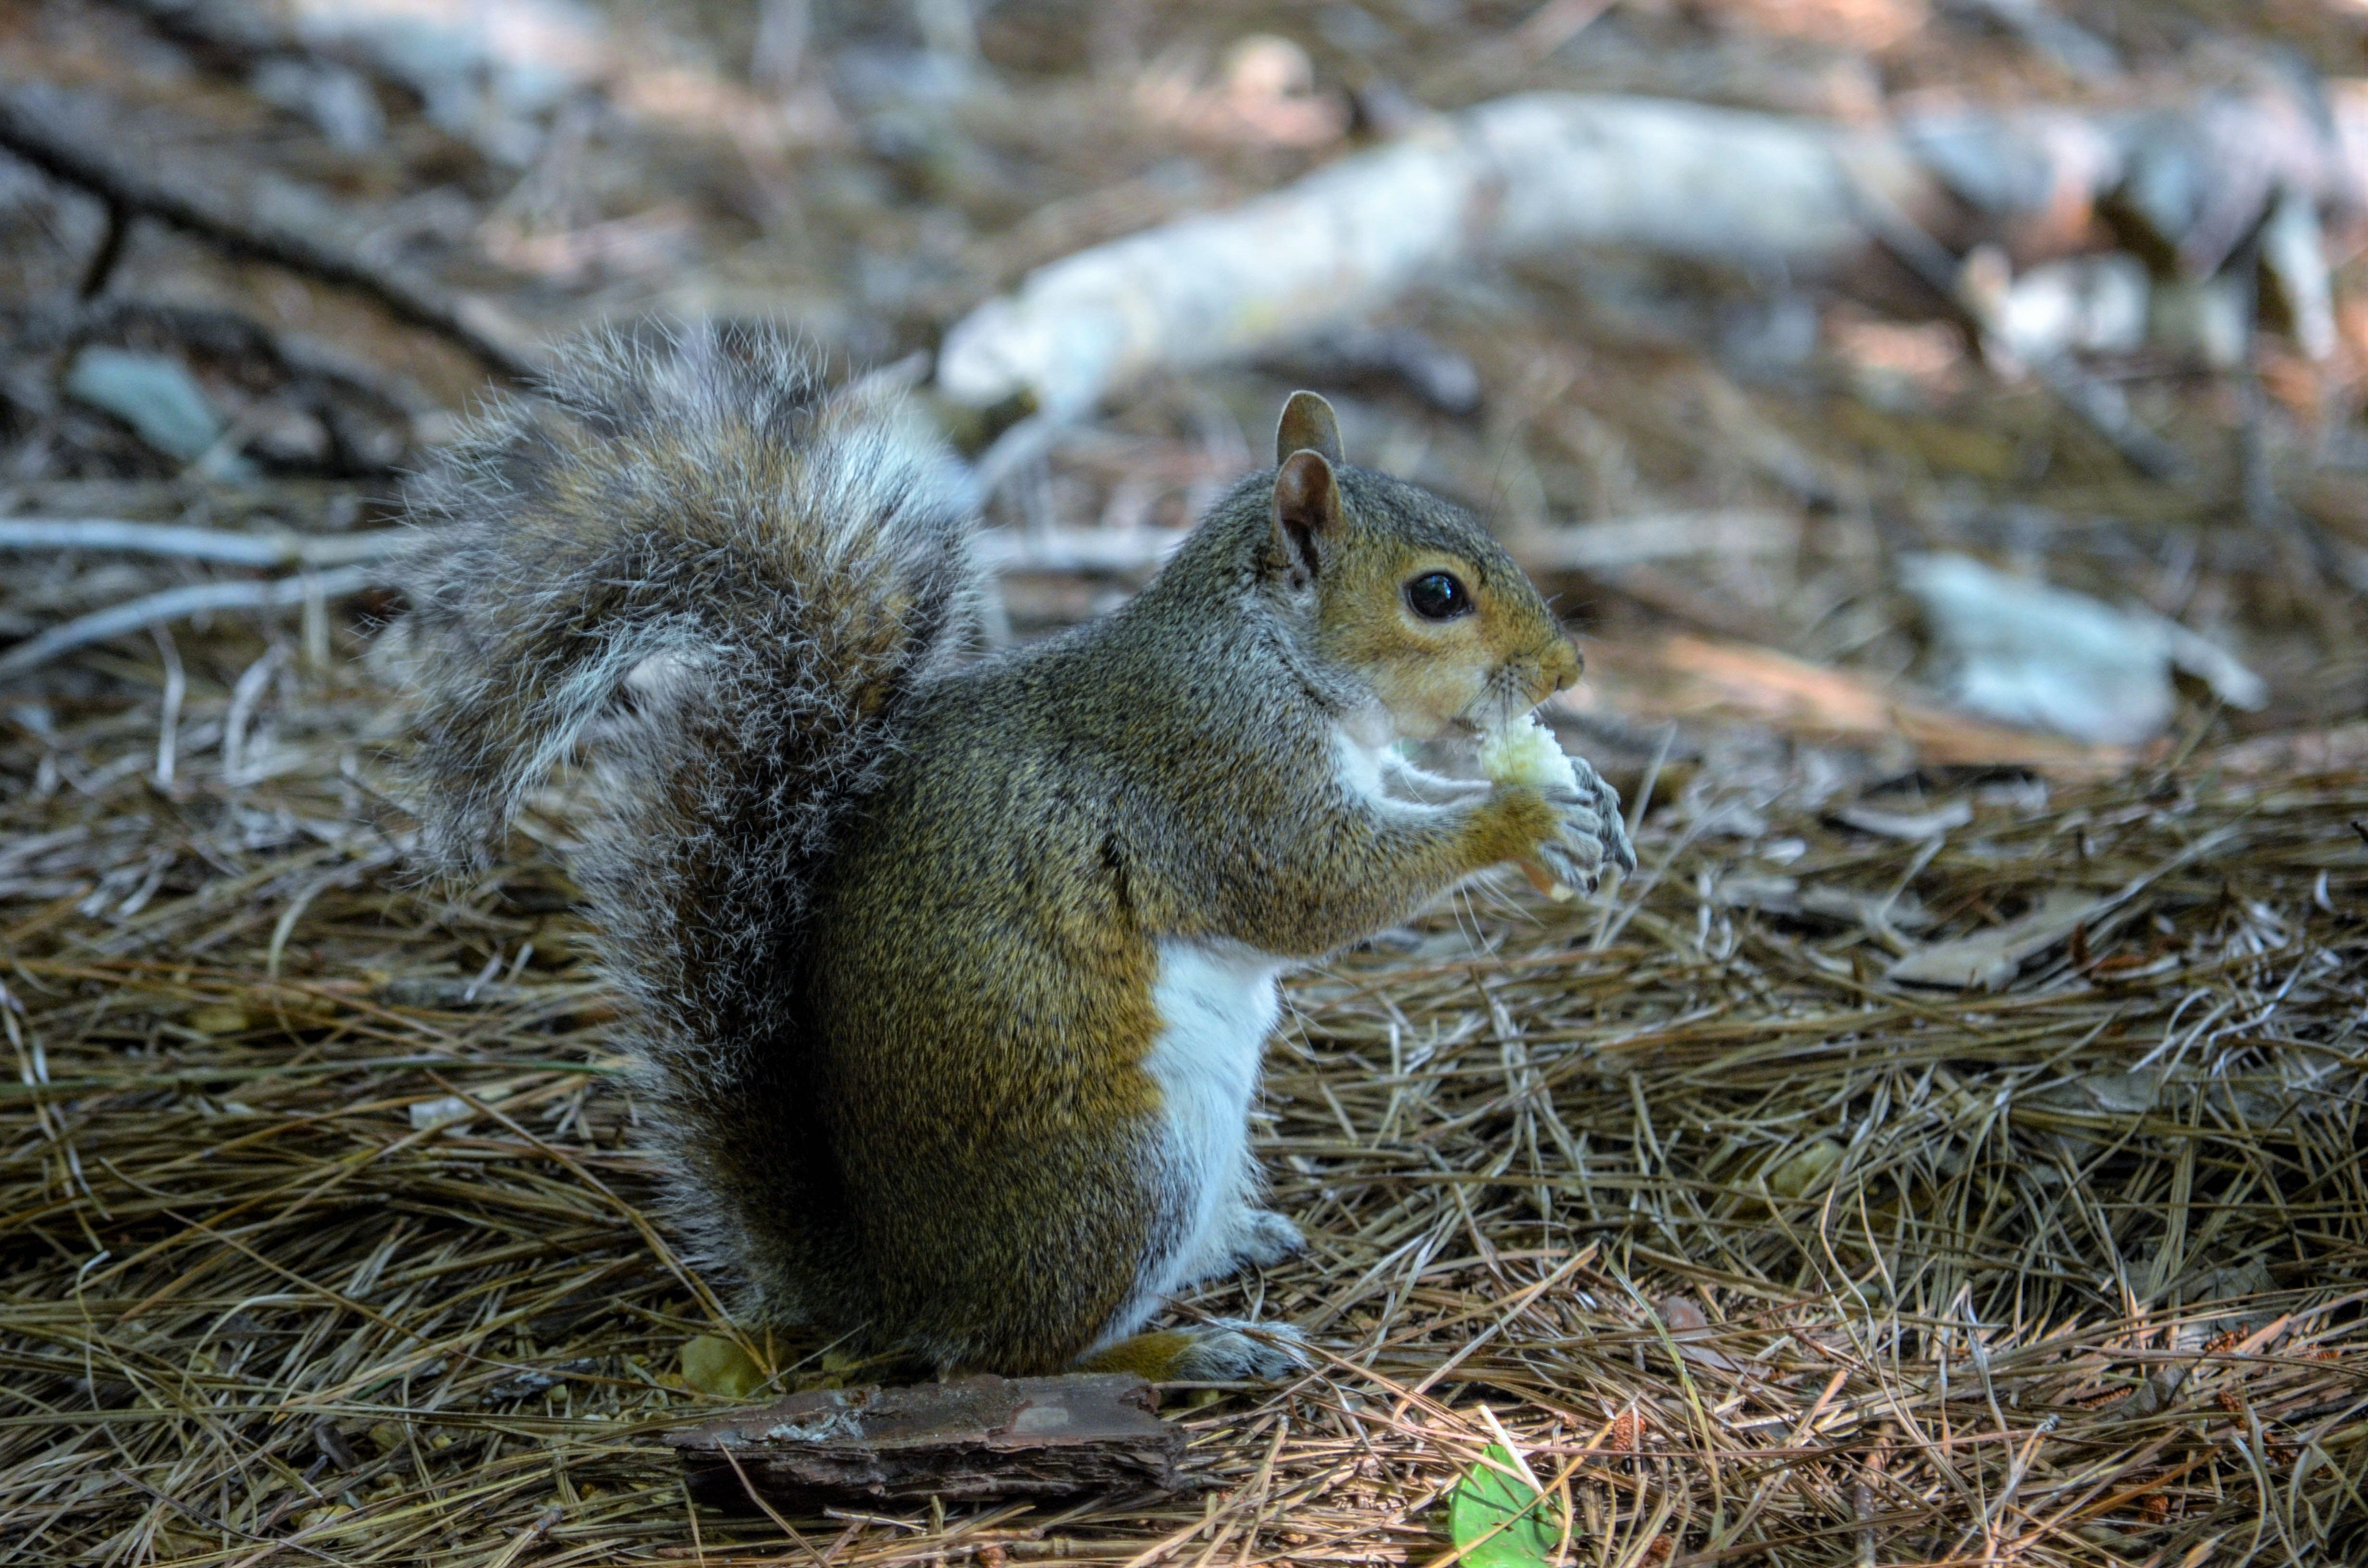 Where squirrel lives in nature 69